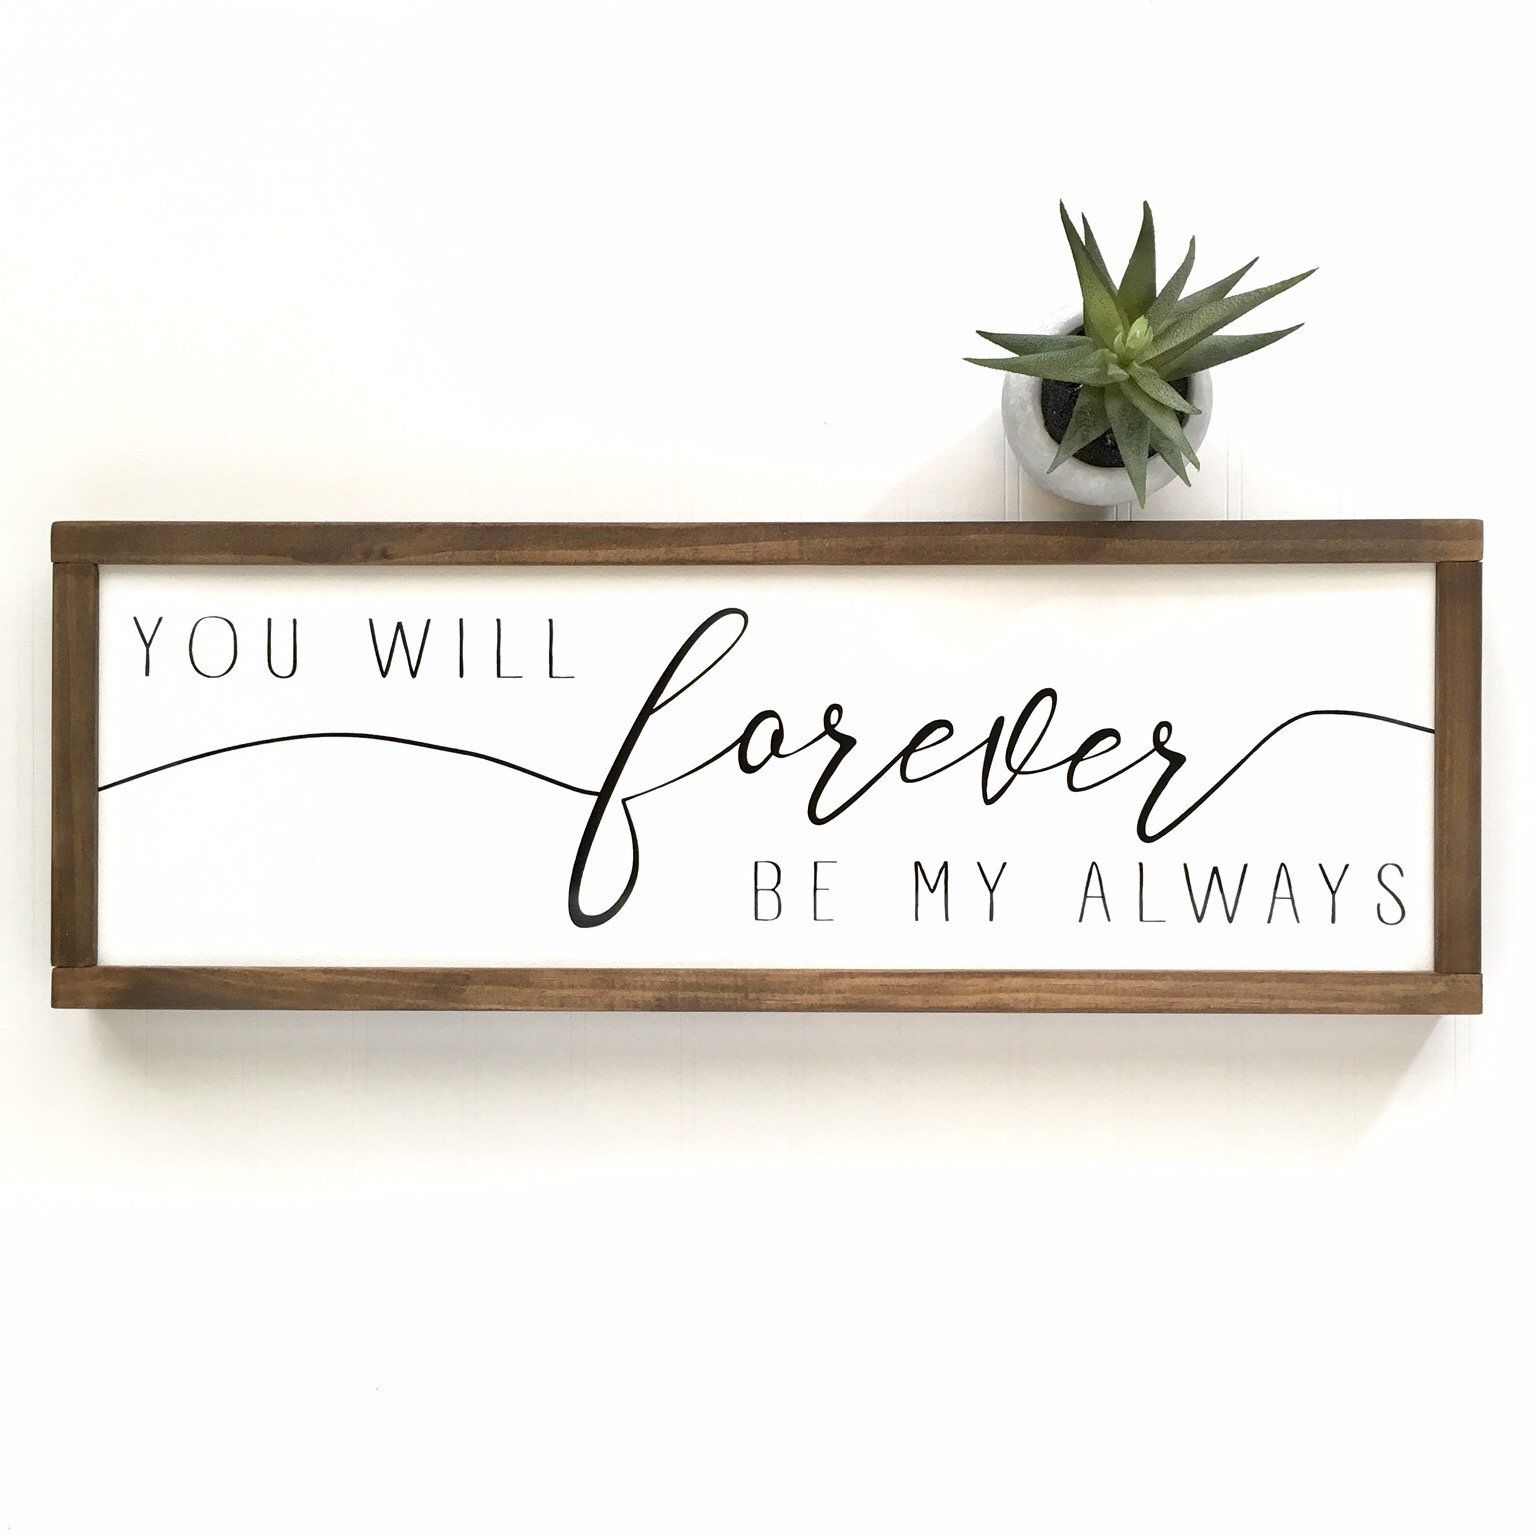 Outdoor Wedding Bathroom Ideas: You Will Forever Be My Always Sign